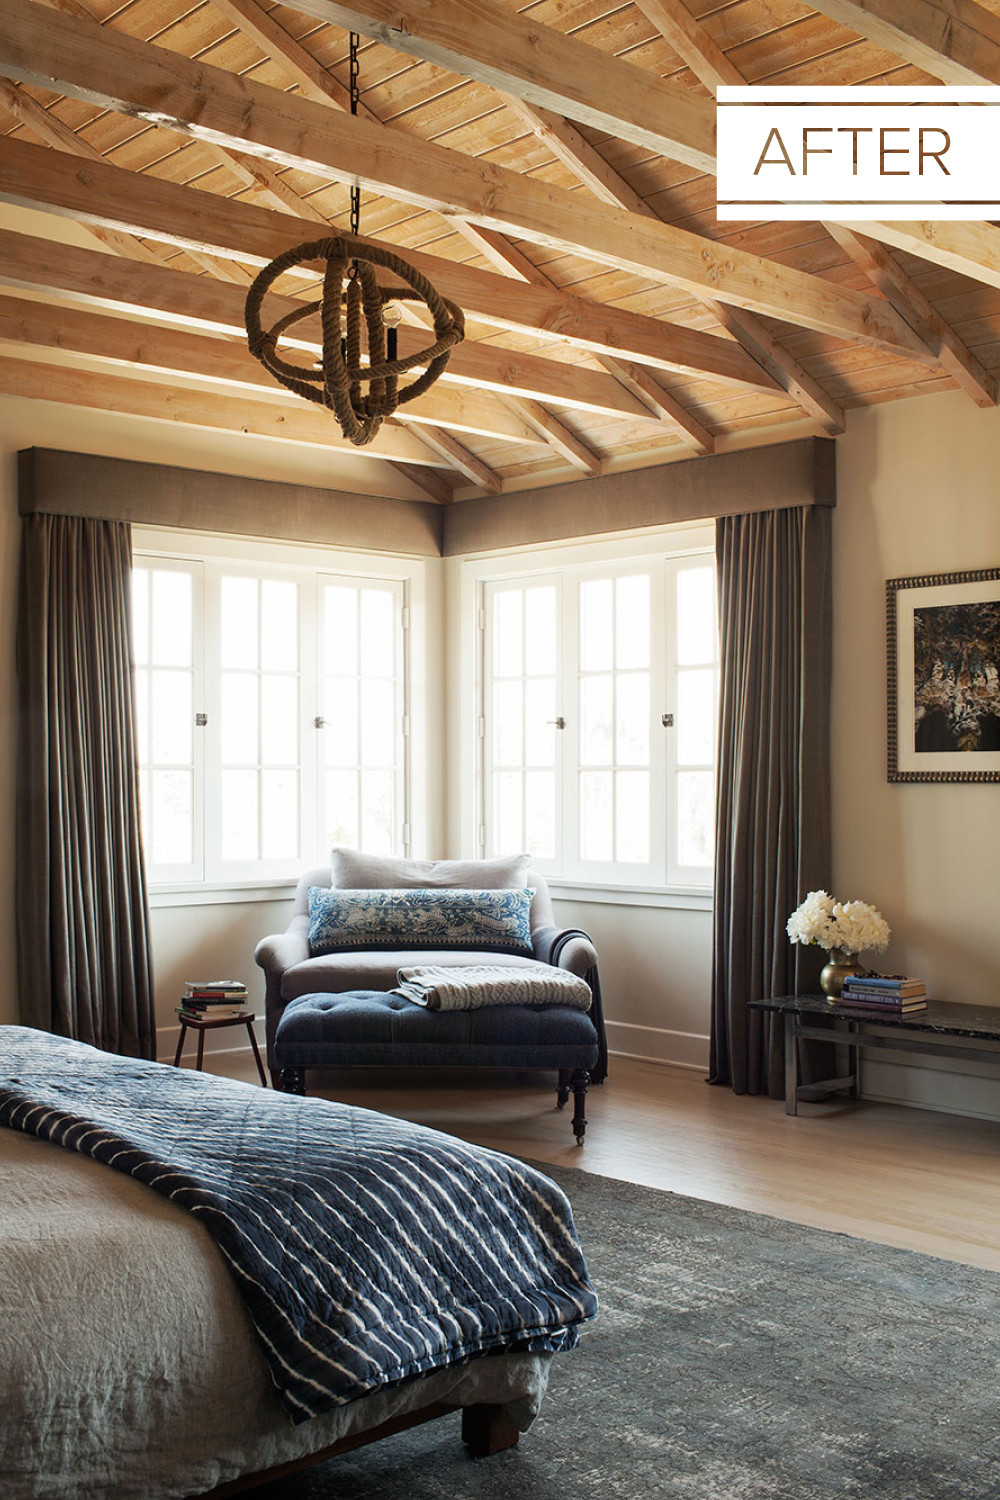 Post-renovation, the expanded master bedroom has a rustic-luxe sensibility.